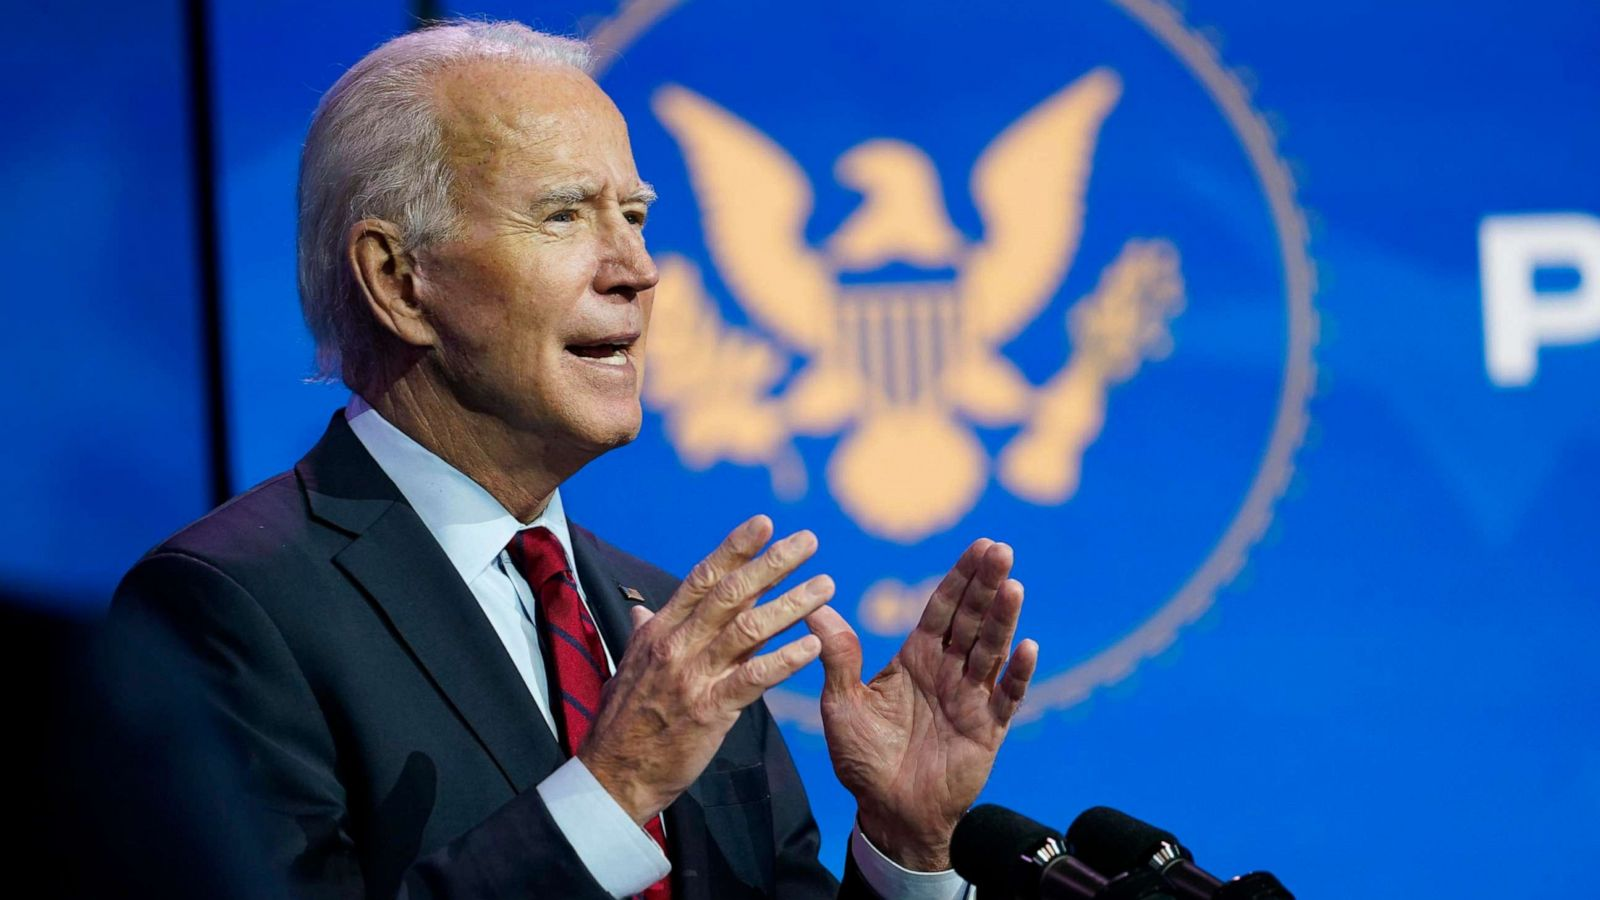 Joe Biden clinches victory in Electoral college voting - cover